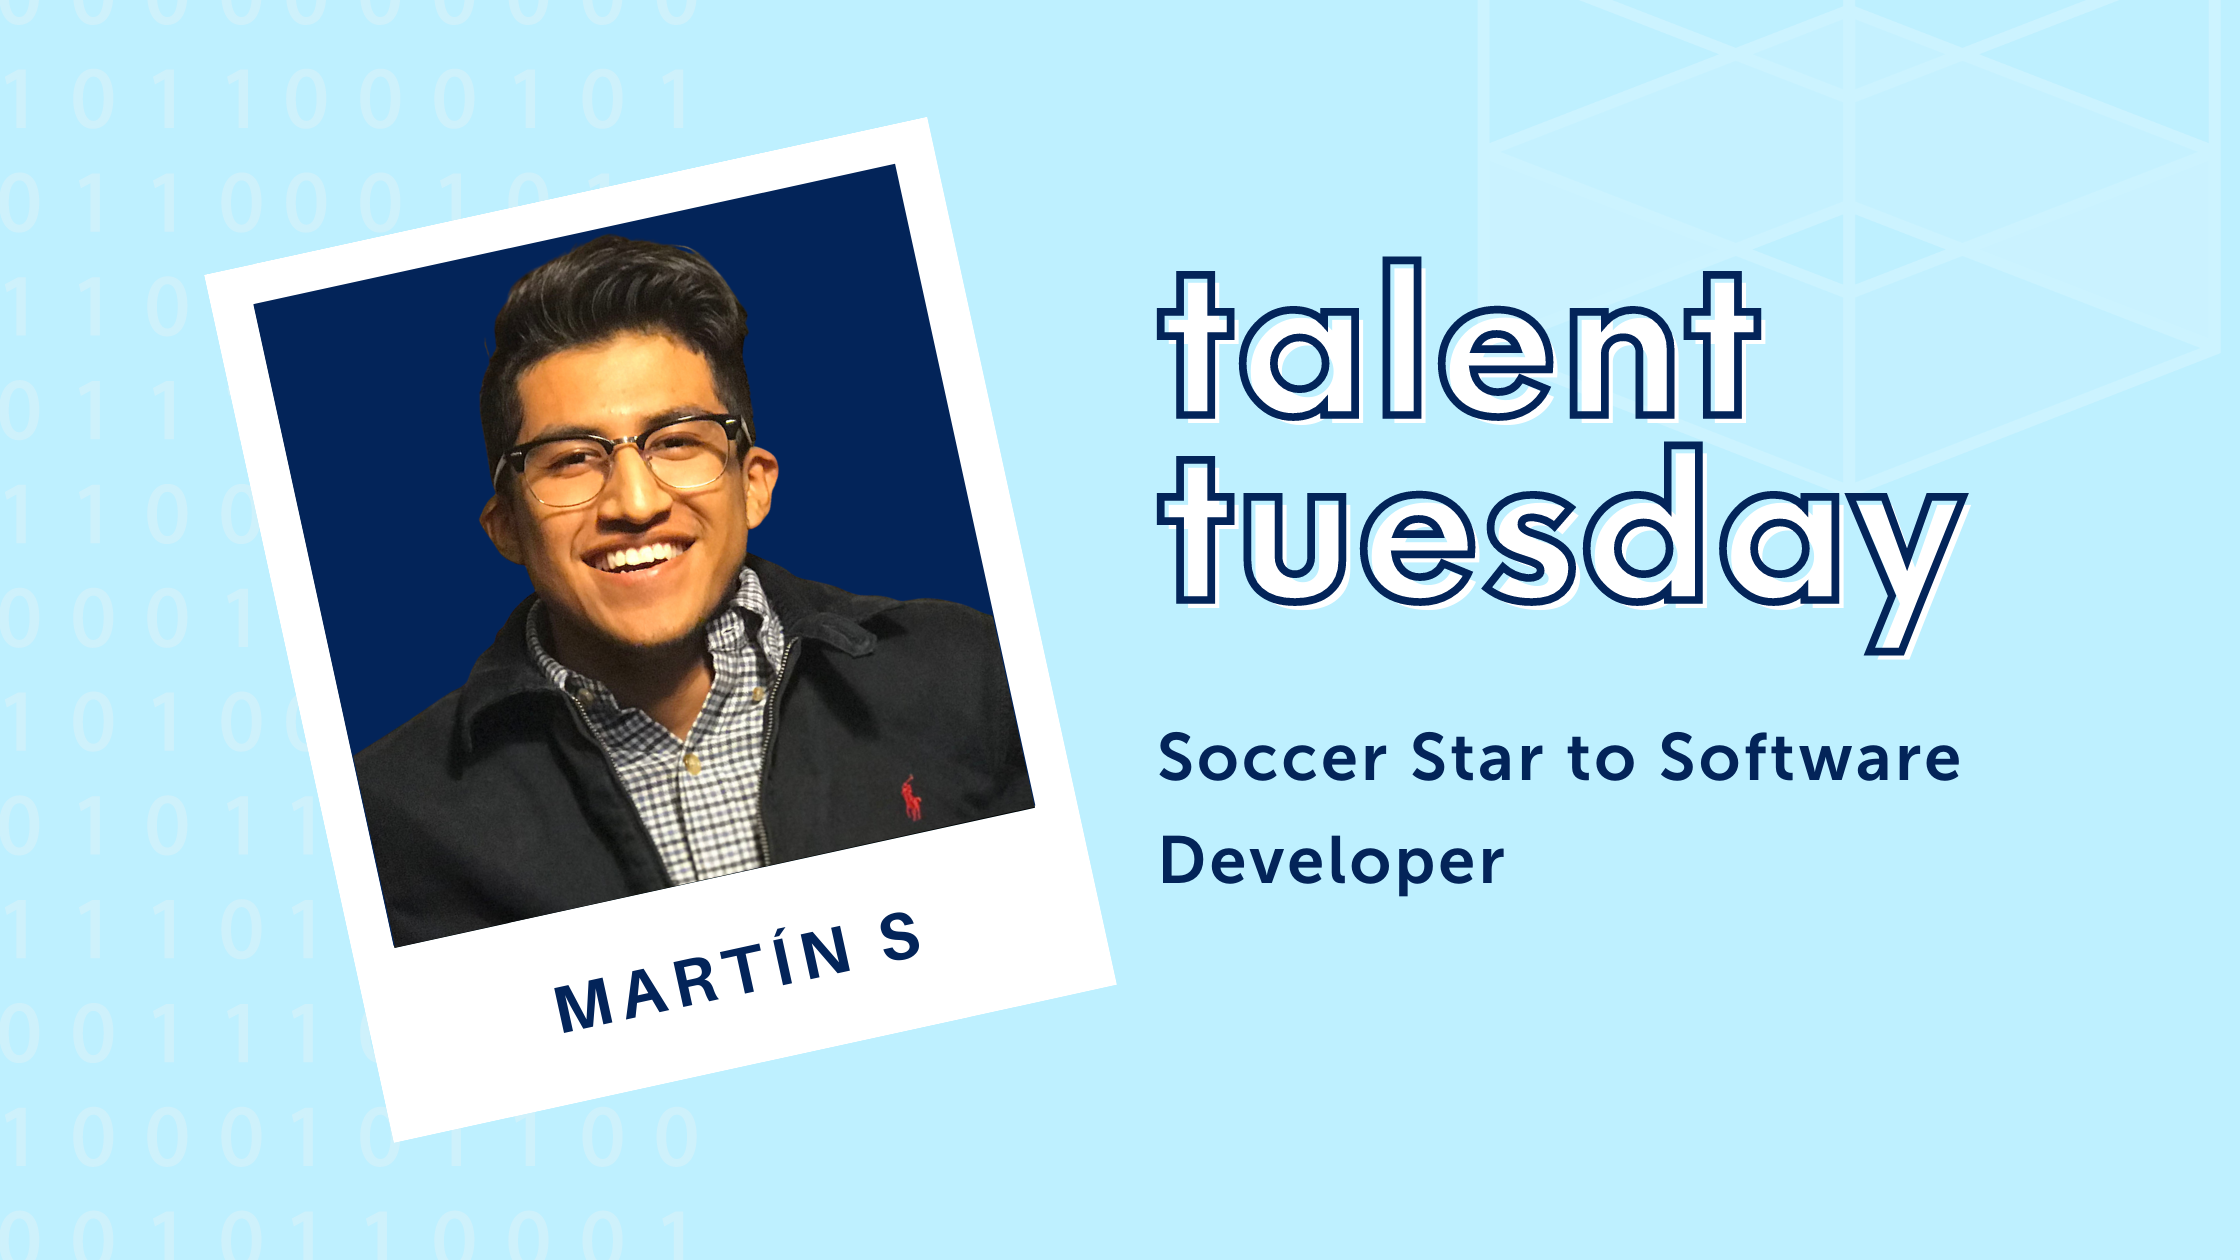 Martín S-talent-tuesday-soccer-star-to-software-developer